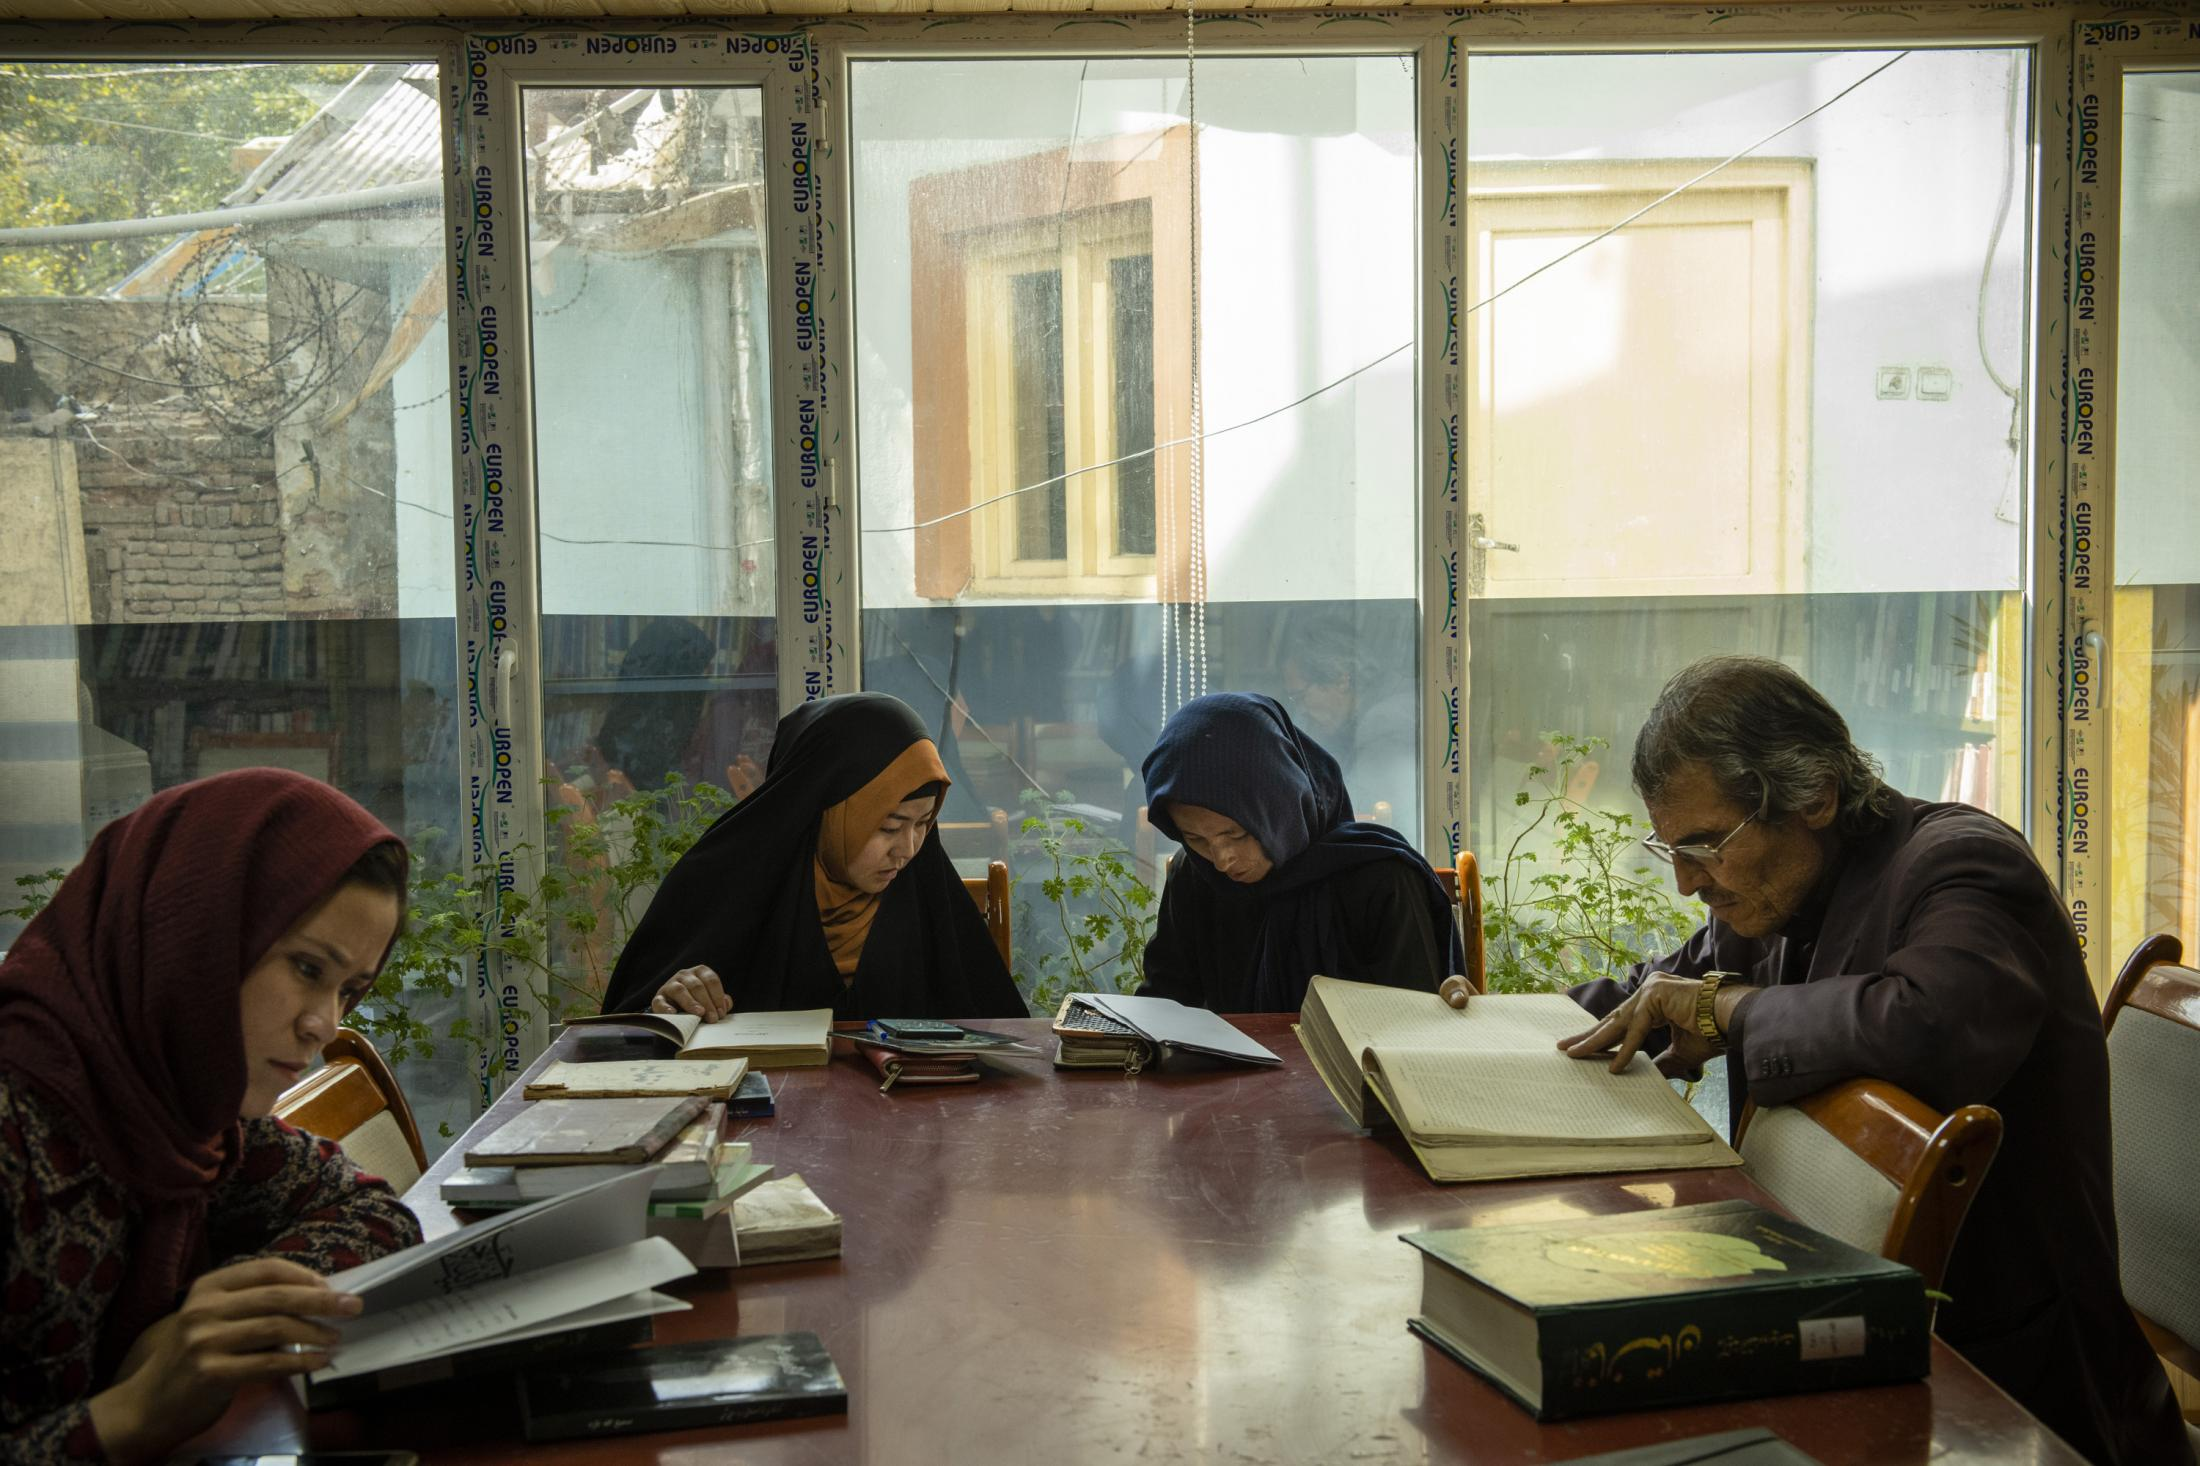 KABUL     10/16/19   Two university students whose thesis project is on the life and poetry of Haidari Wojoodi look trough the available books on the first floor of the public library, before they pay a visit to him at the newspaper archive department.